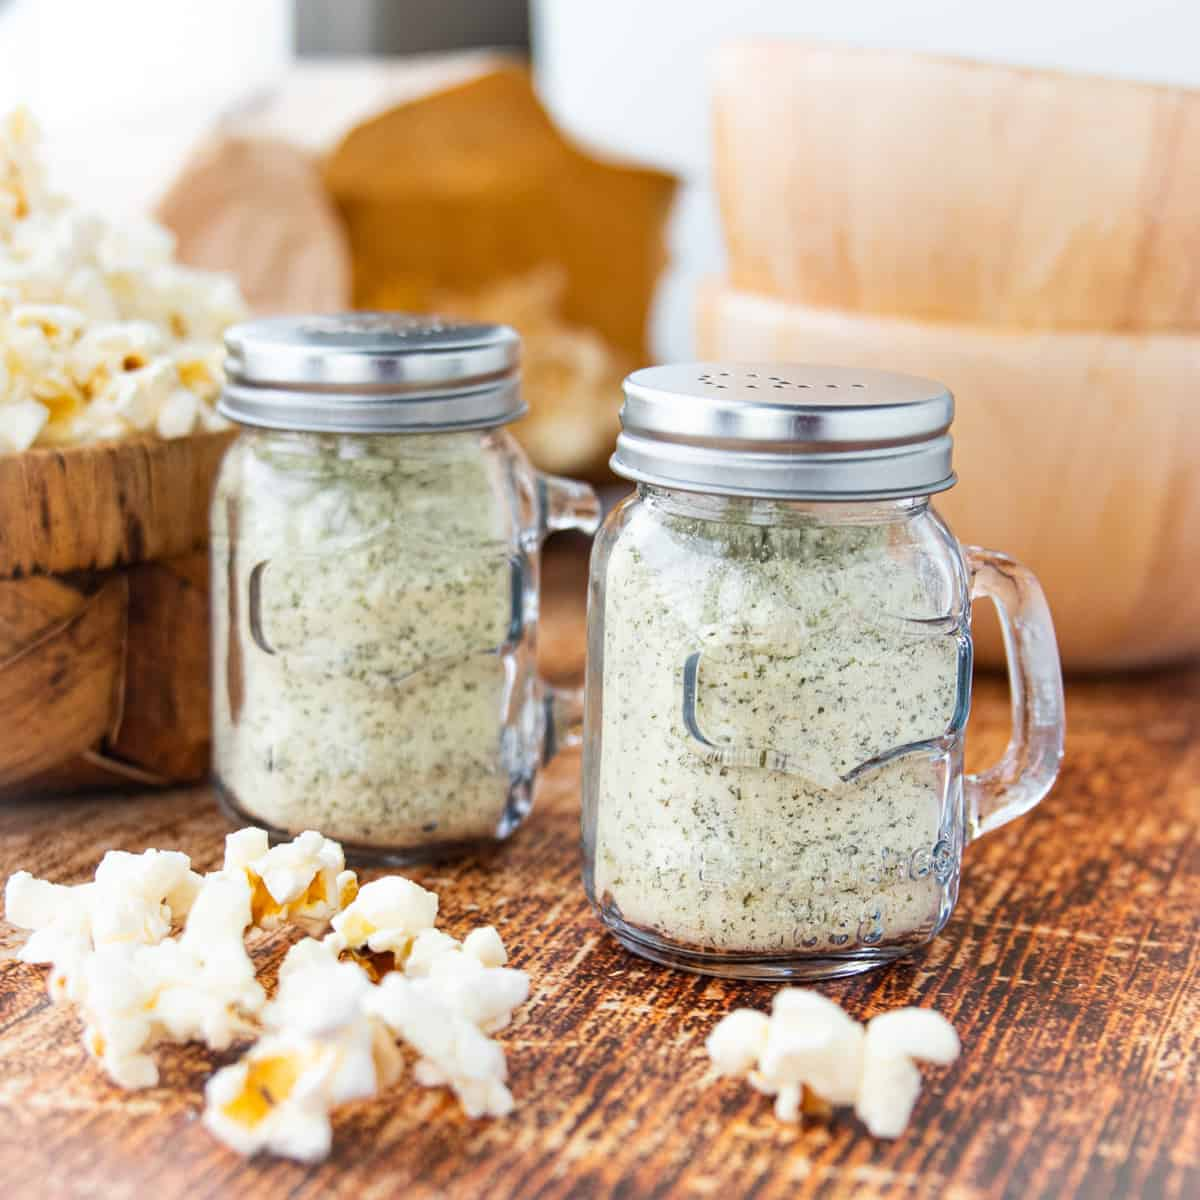 Two shakers of ranch popcorn seasoning surrounded by popped popcorn on a wooden surface.